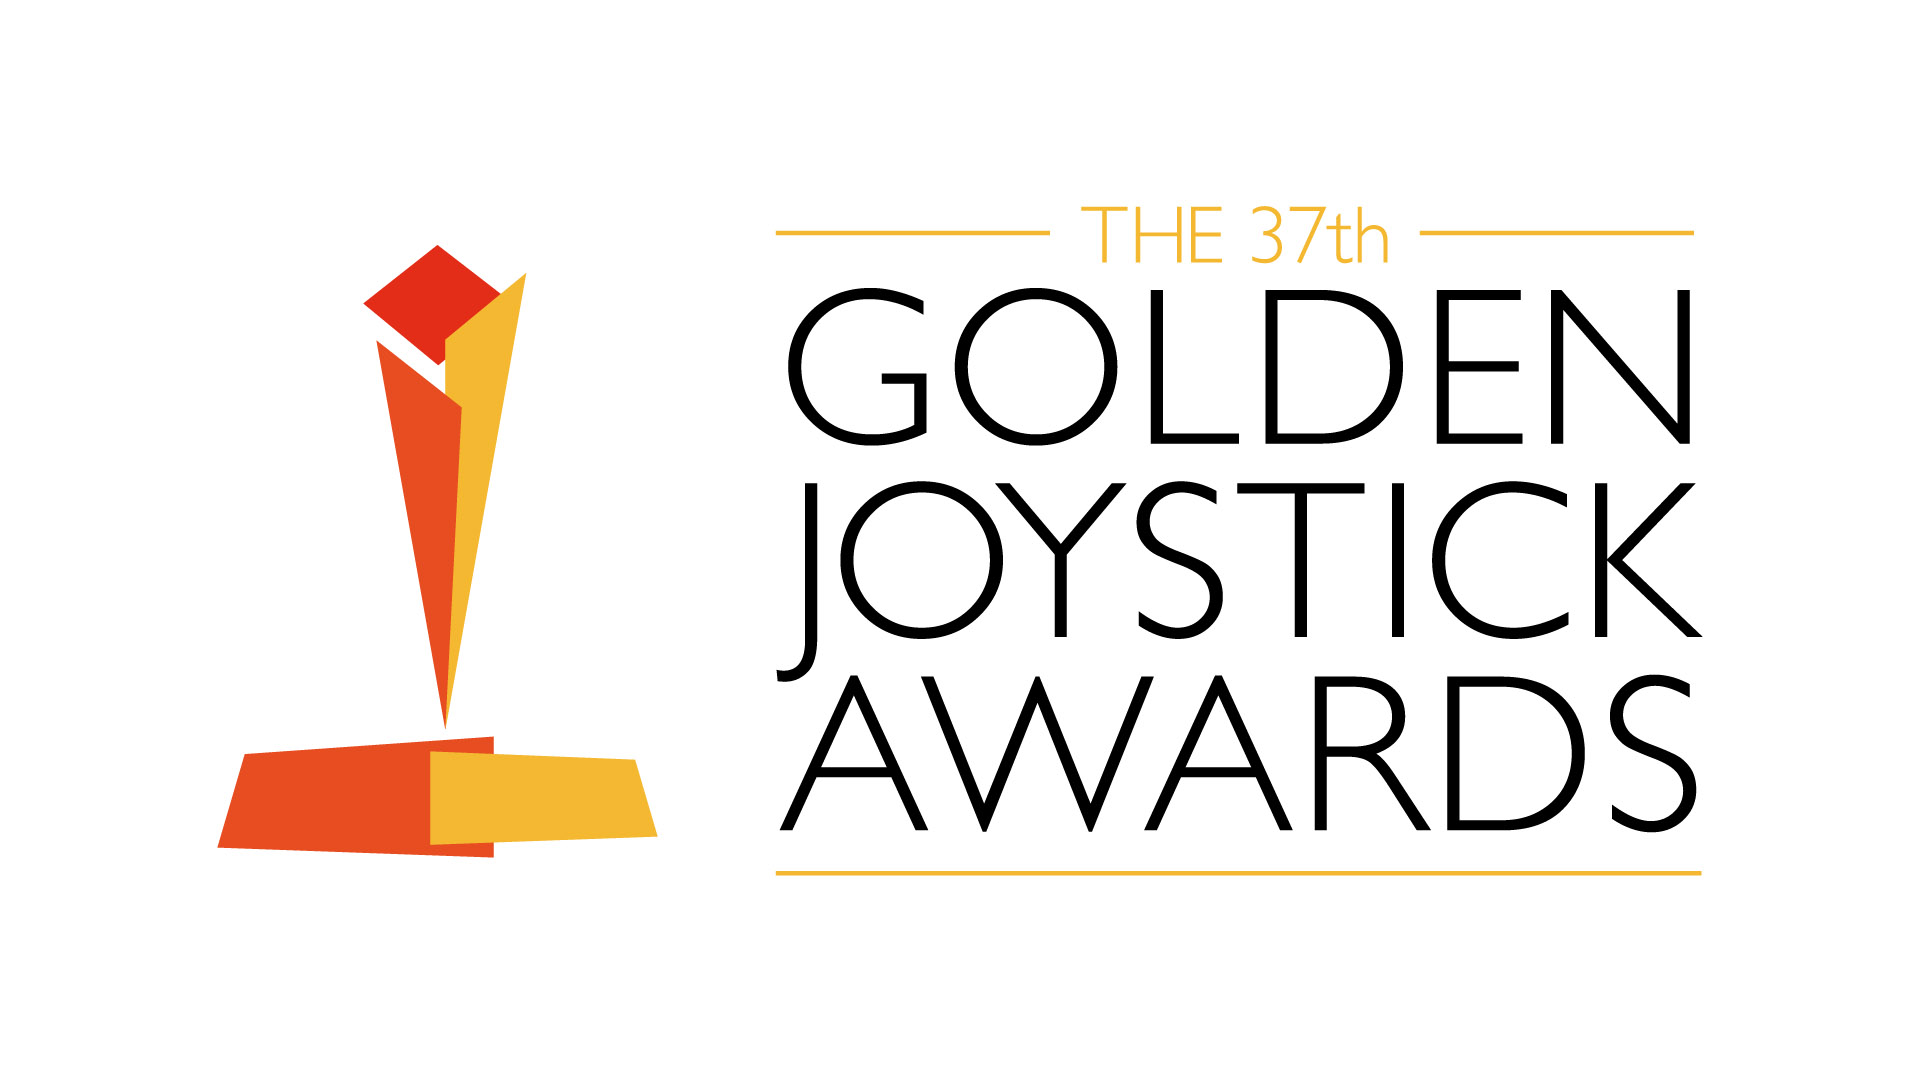 the golden joystick awards, golden joystick award news, golden joystick, golden joystick awards logo